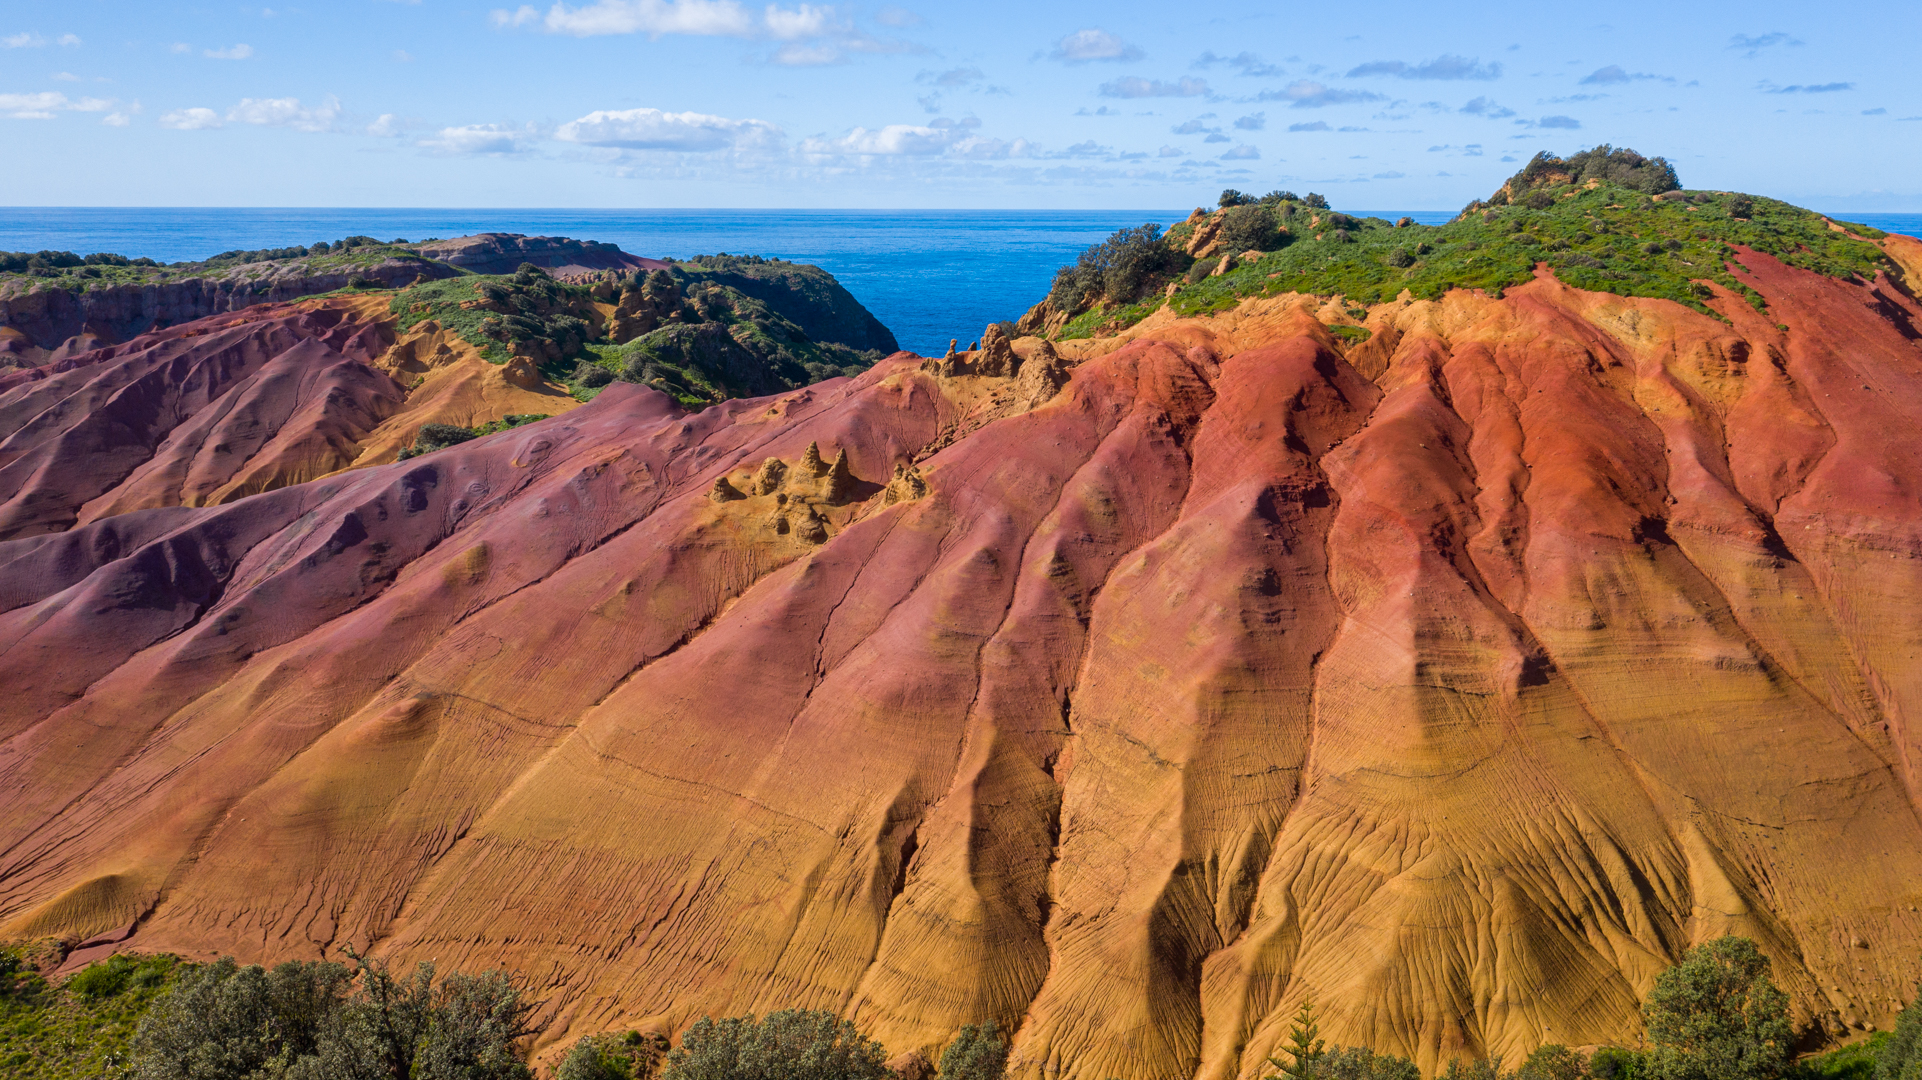 Huge rock formations in a dome shape with many vertical indentations caused by erosion. The orange, rust, ochre and pink hues of the rock are layered like a rainbow.